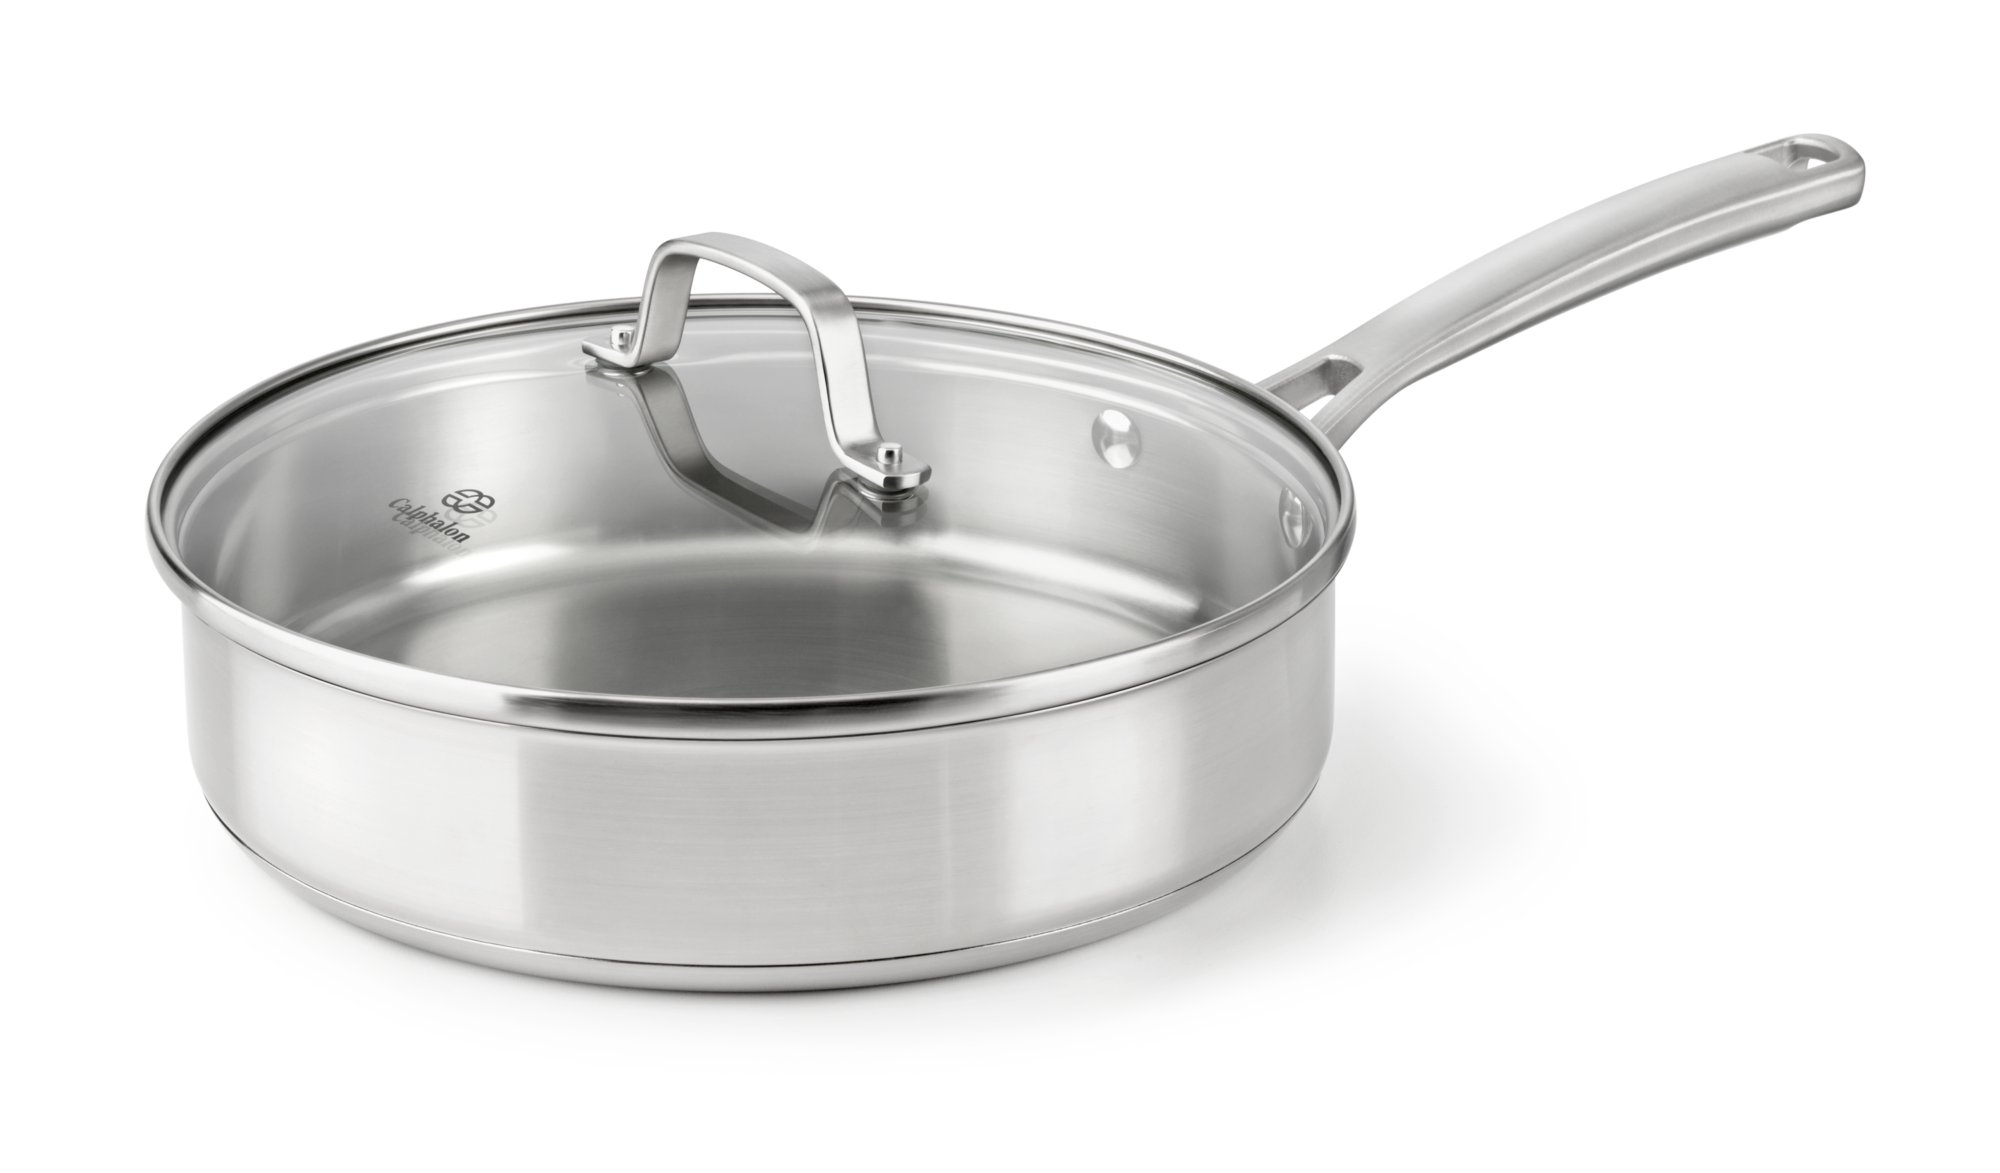 Calphalon Classic Stainless Steel 3-qt. Saute Pan with Cover